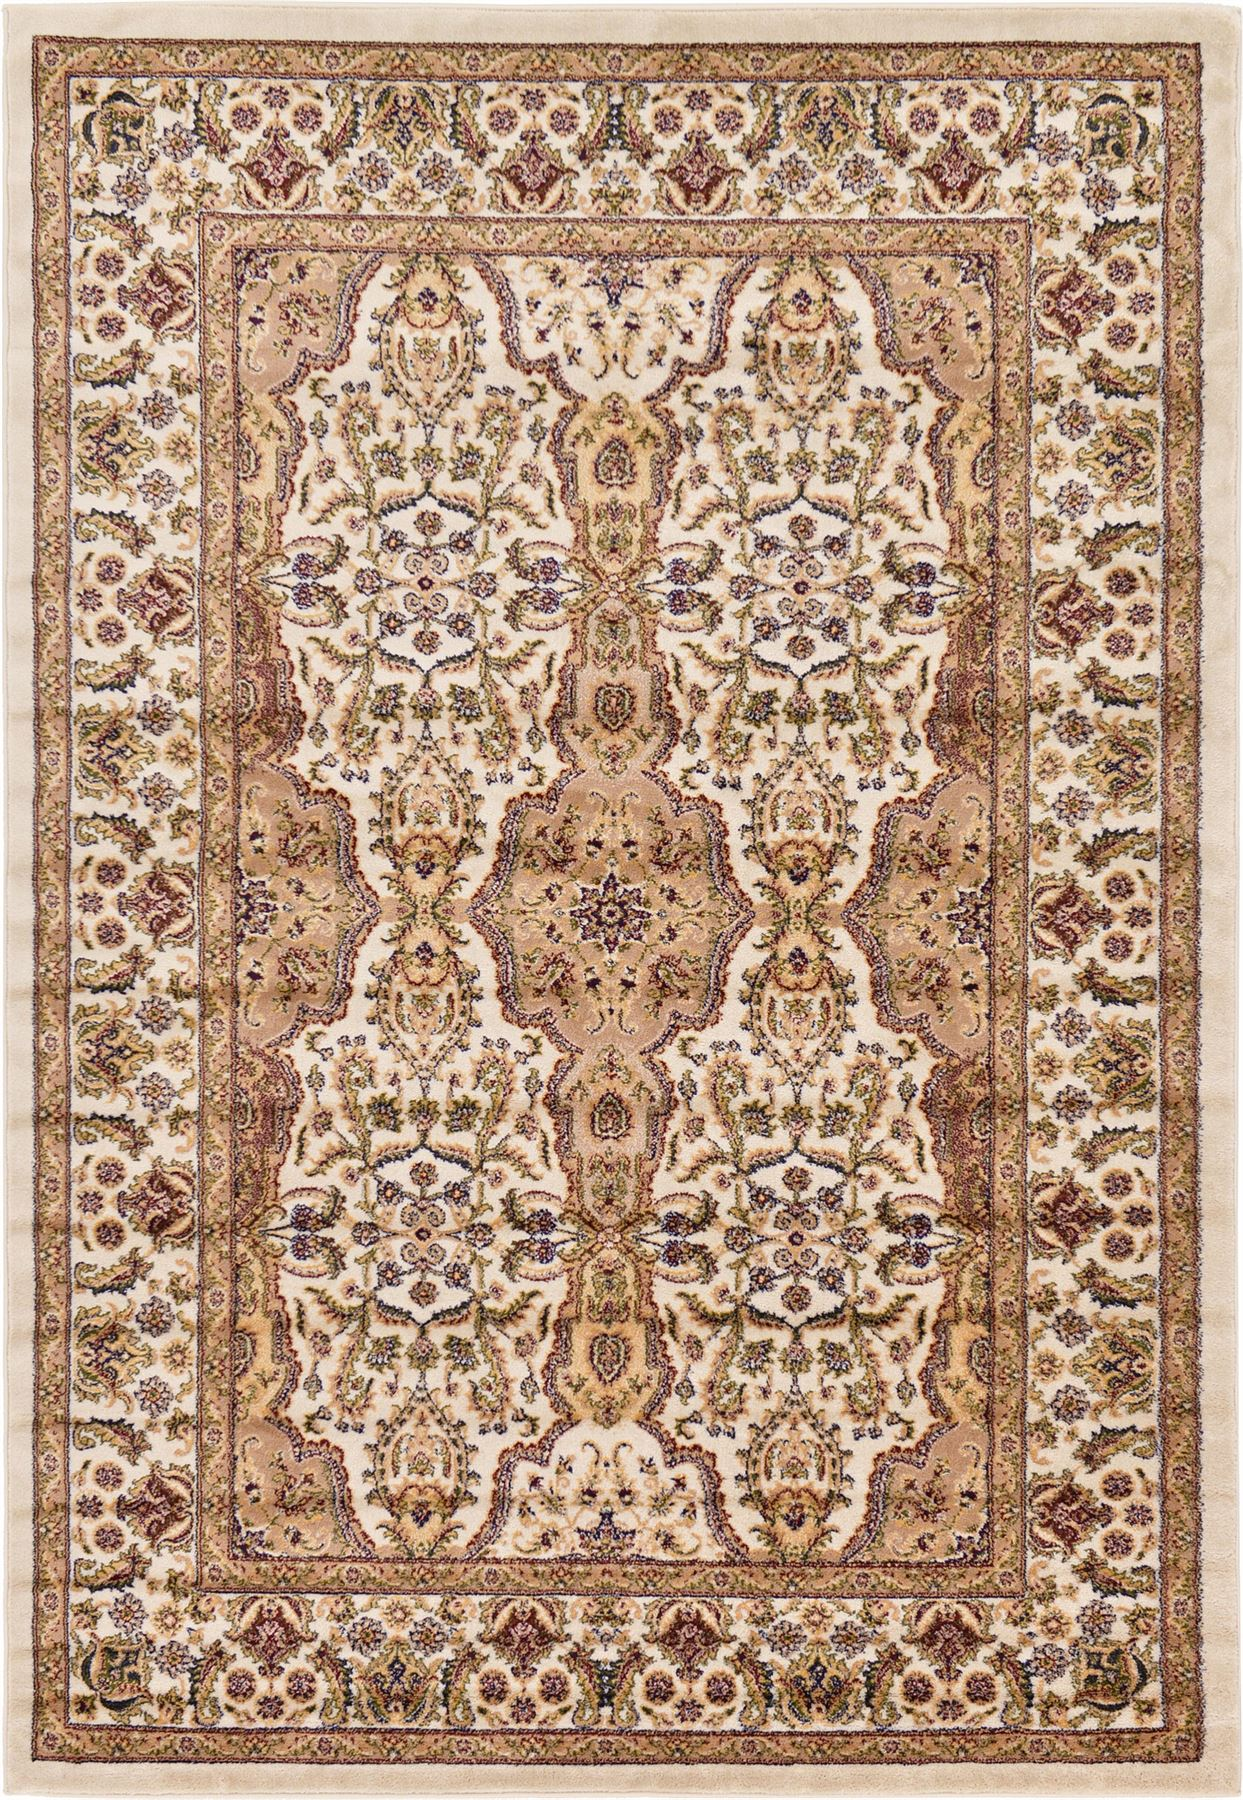 Traditional Persian design Rug Unique Carpets Different Rugs Sizes Area Rugs  eBay